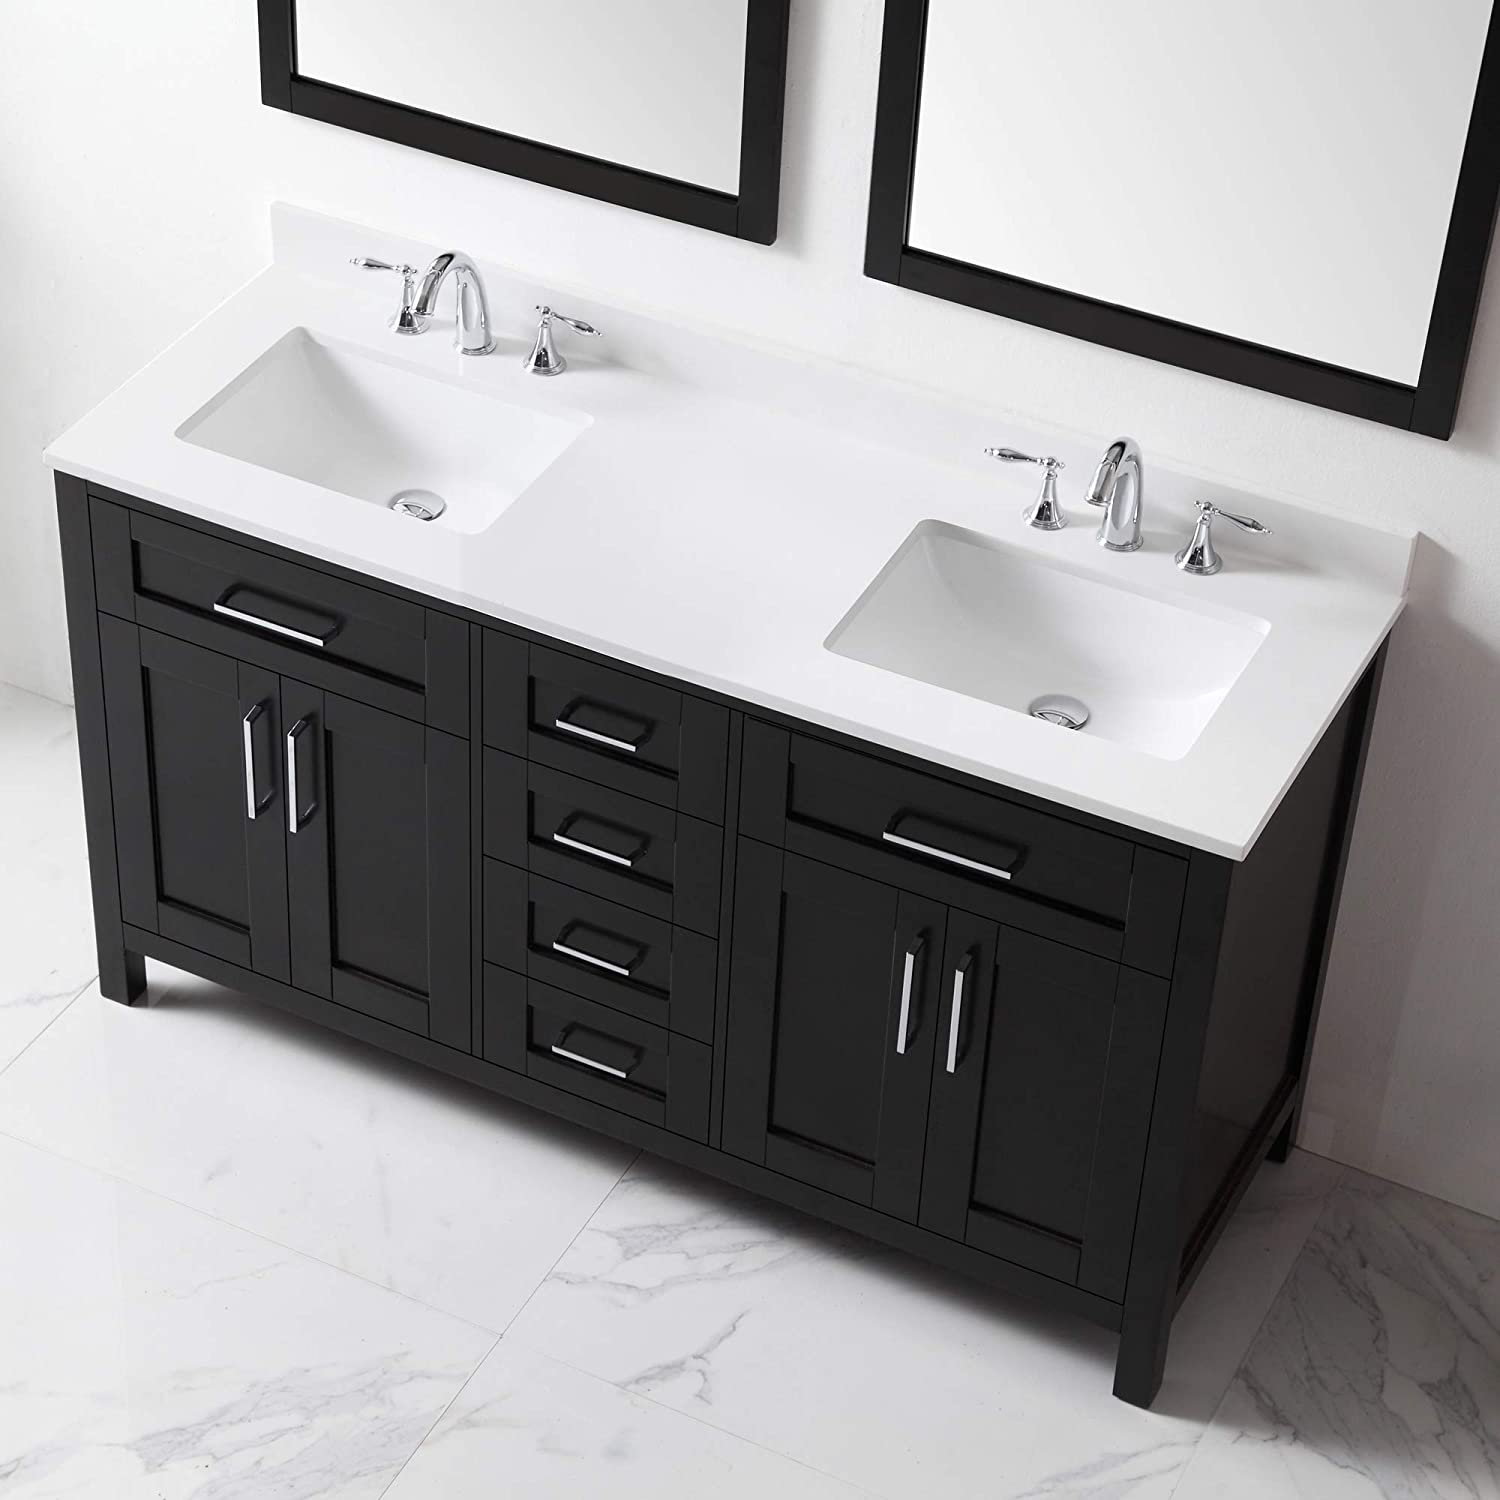 Ove Decors Tahoe 60e Quartz Top Bathroom Double Sink Vanity 60 Inch By 21 Inch Espresso Amazon Co Uk Diy Tools